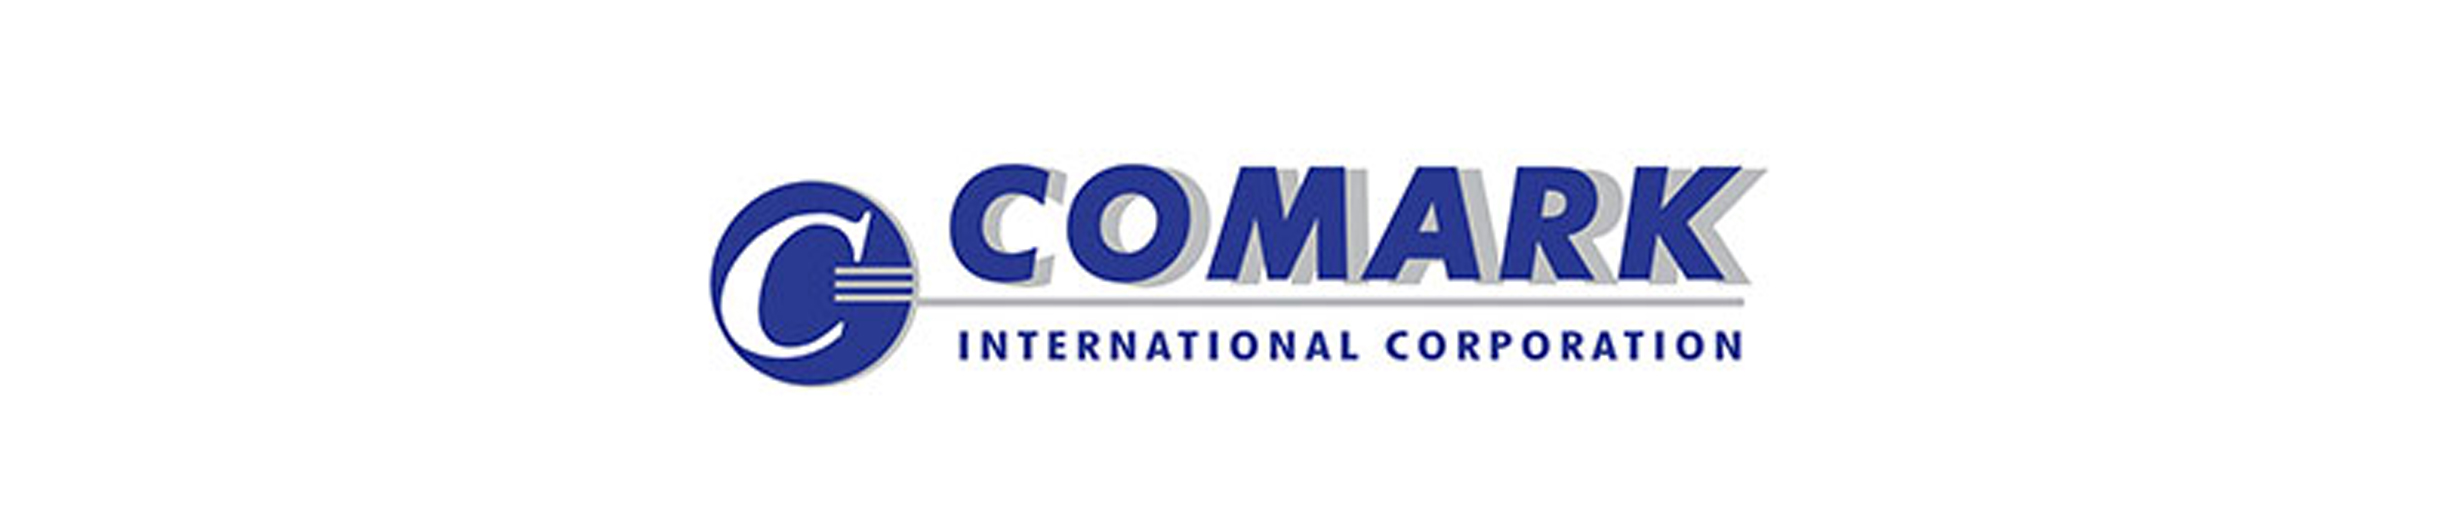 COMARK%20INTERNATIONAL%20CORPORATION.jpg